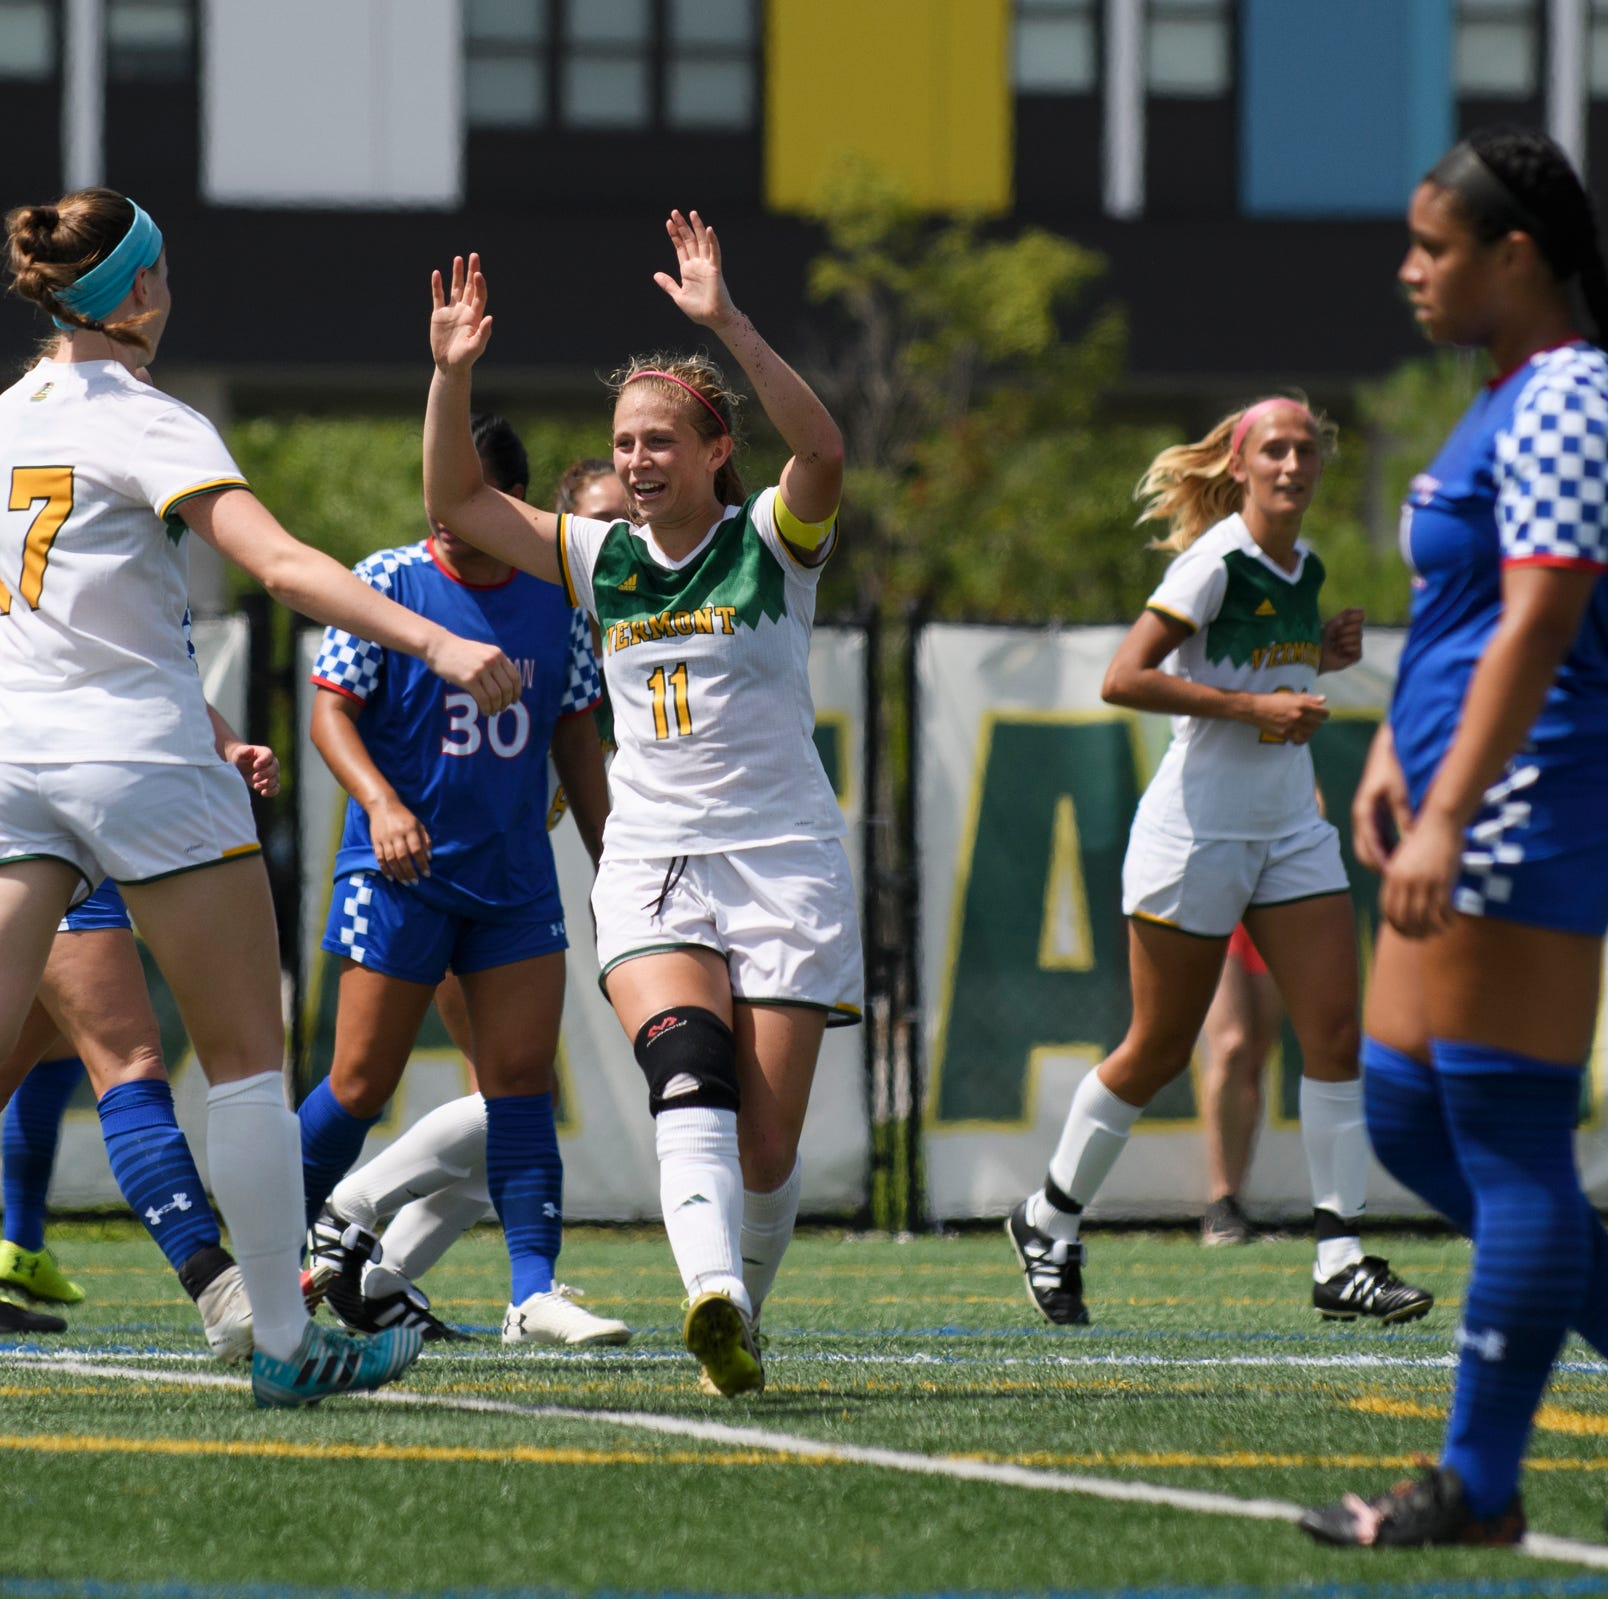 Vermont's Brooke Jenkins (11) celebrates a goal with Aly Spencer (17) during the women's soccer game between the American Eagles and the Vermont Catamounts at Virtue Field on Sunday afternoon August 19, 2018 in Burlington.